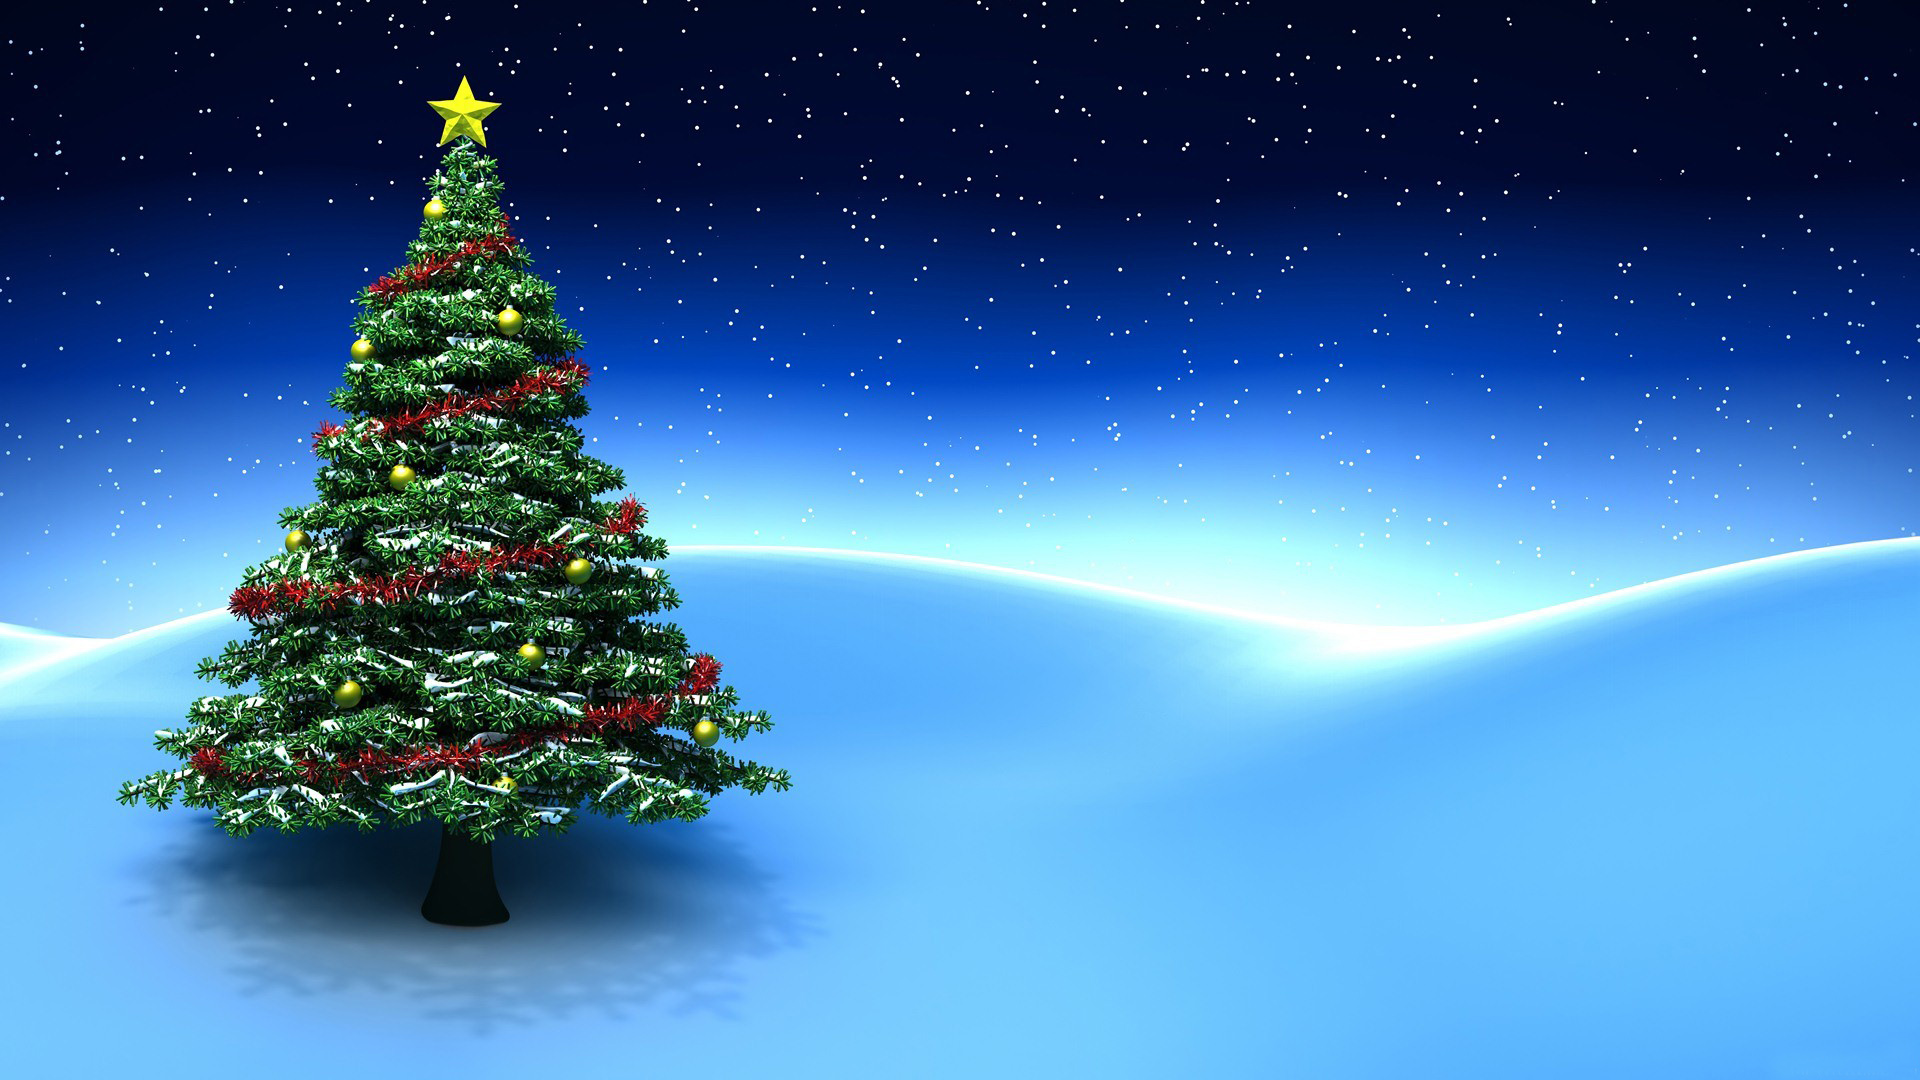 3D Holidays Christmas Wallpapers 1920x1080